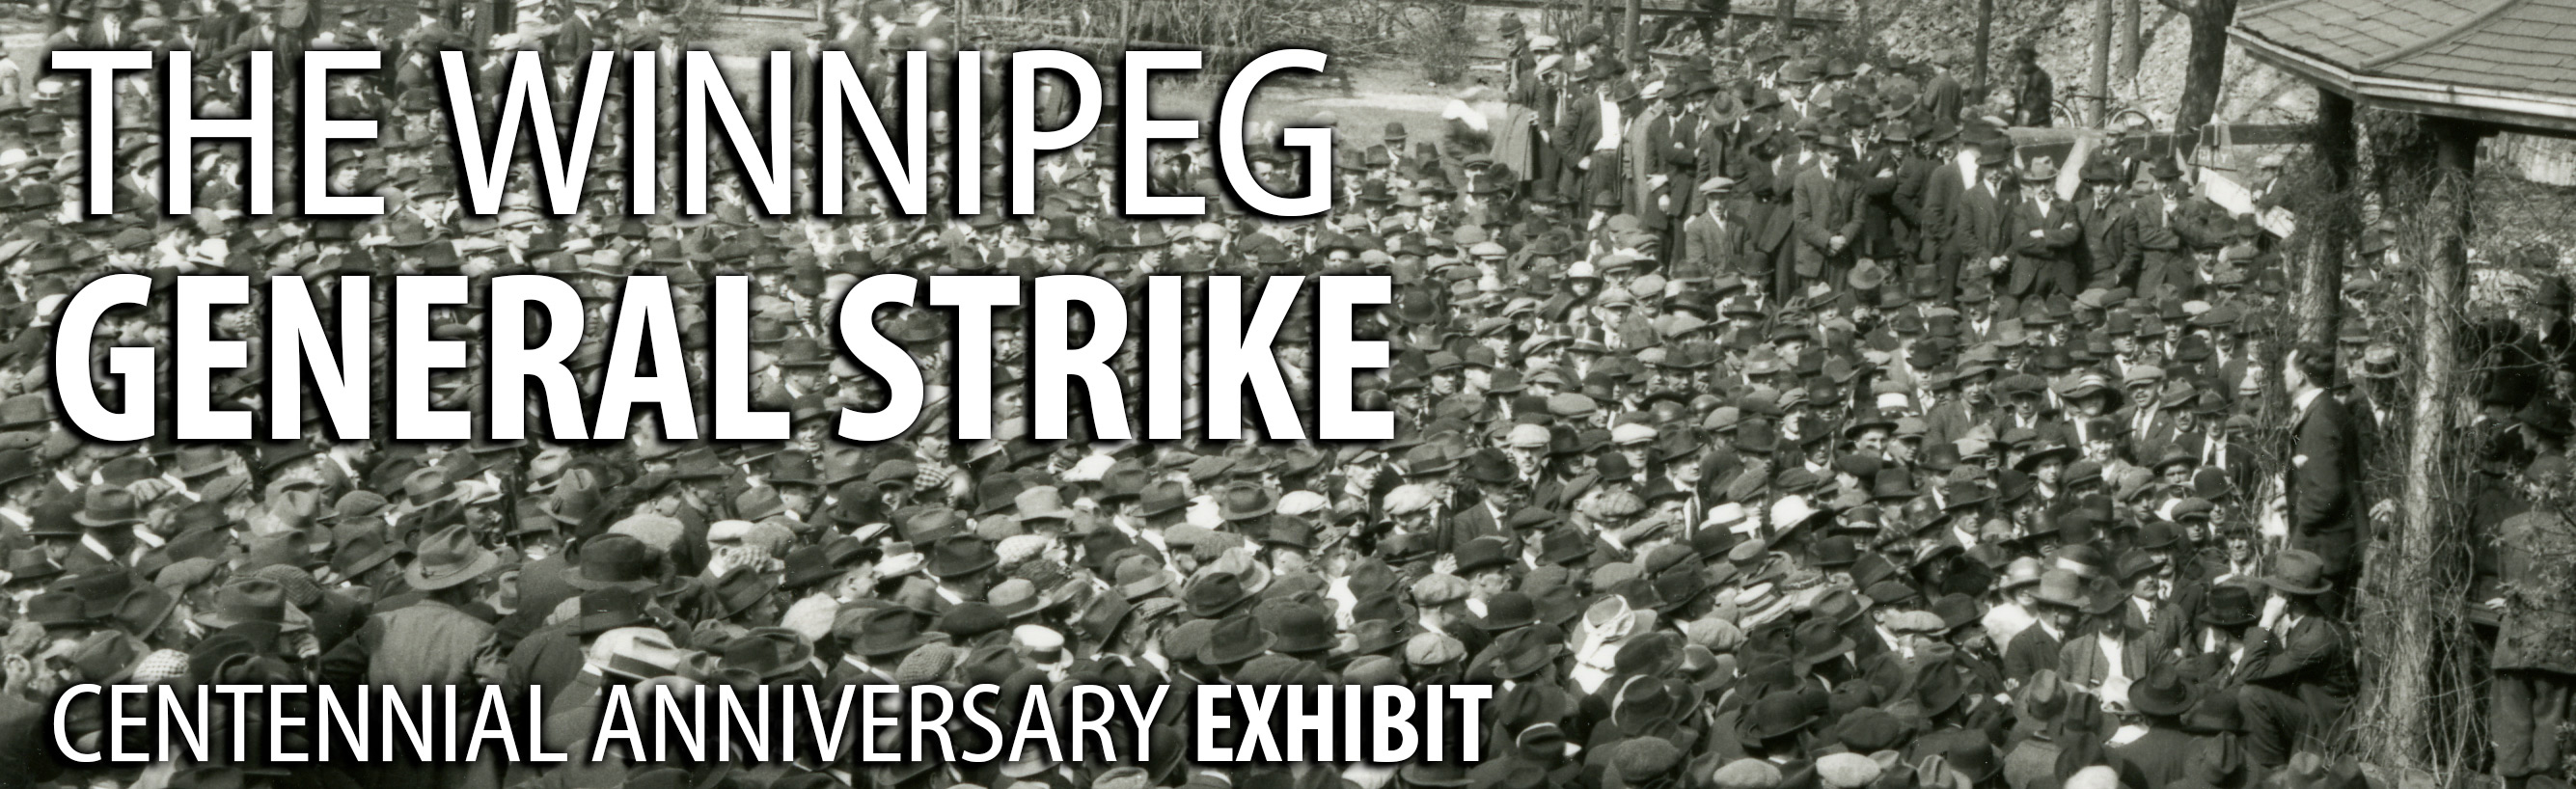 Winnipeg General Strike Centennial